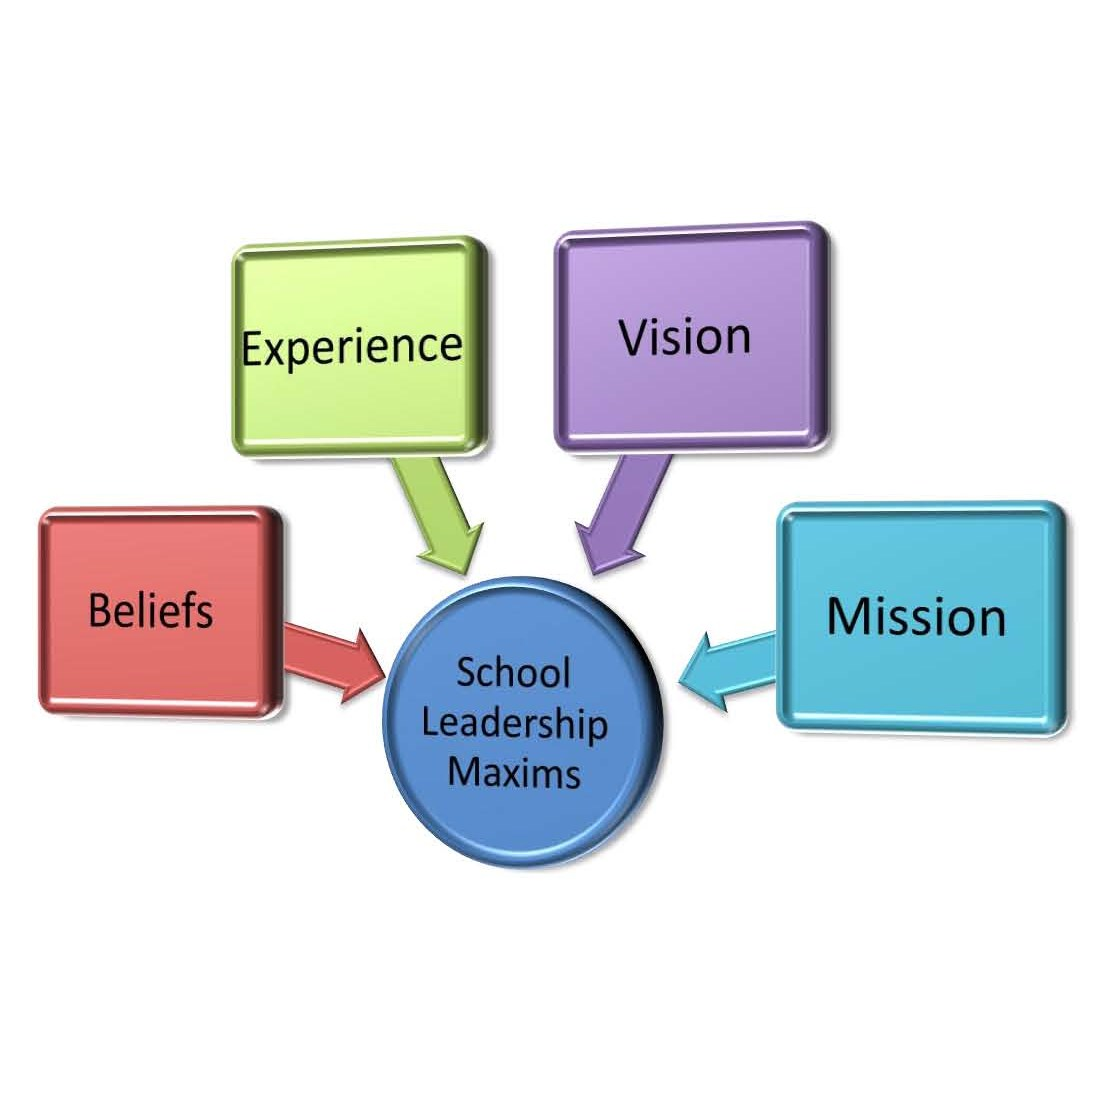 improvement of the school environment essay Home → blog → essay on school uniforms: pros and cons essay about school uniforms will uniforms in the school environment is likely to.